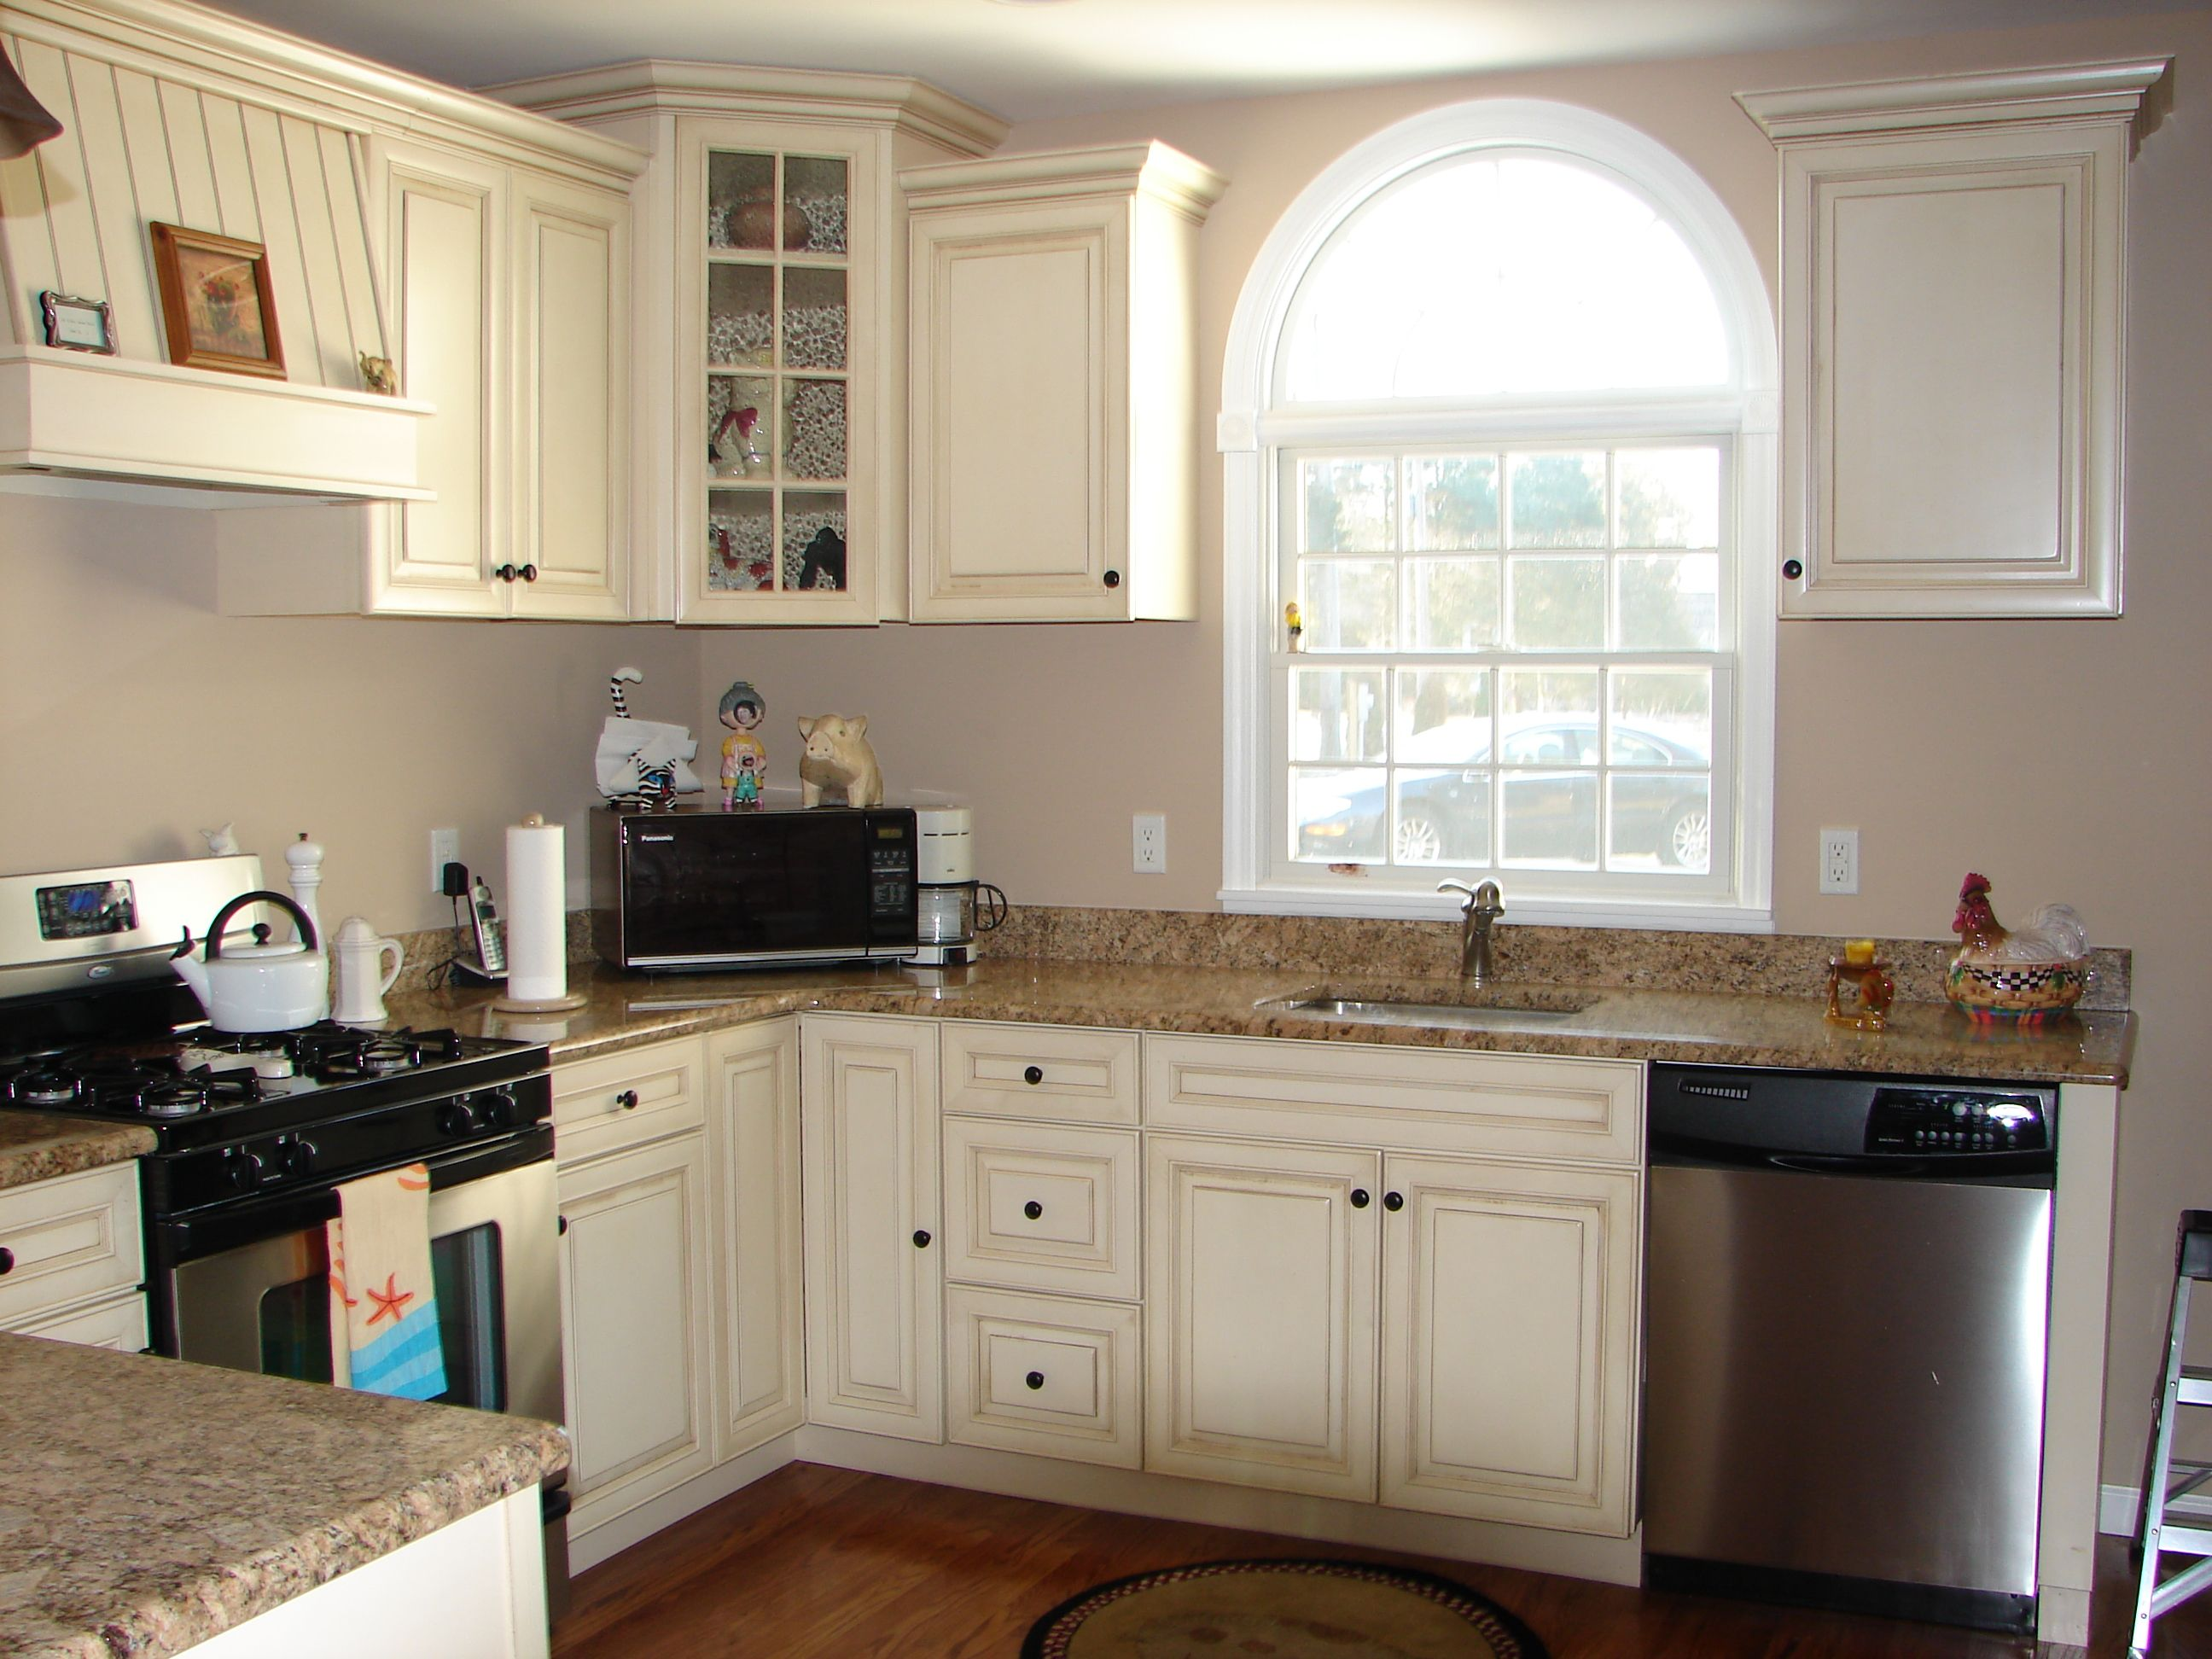 Colors For Kitchen Walls With White Cabinets Gray Walls With Distressed Cream Cabinets And Pretty